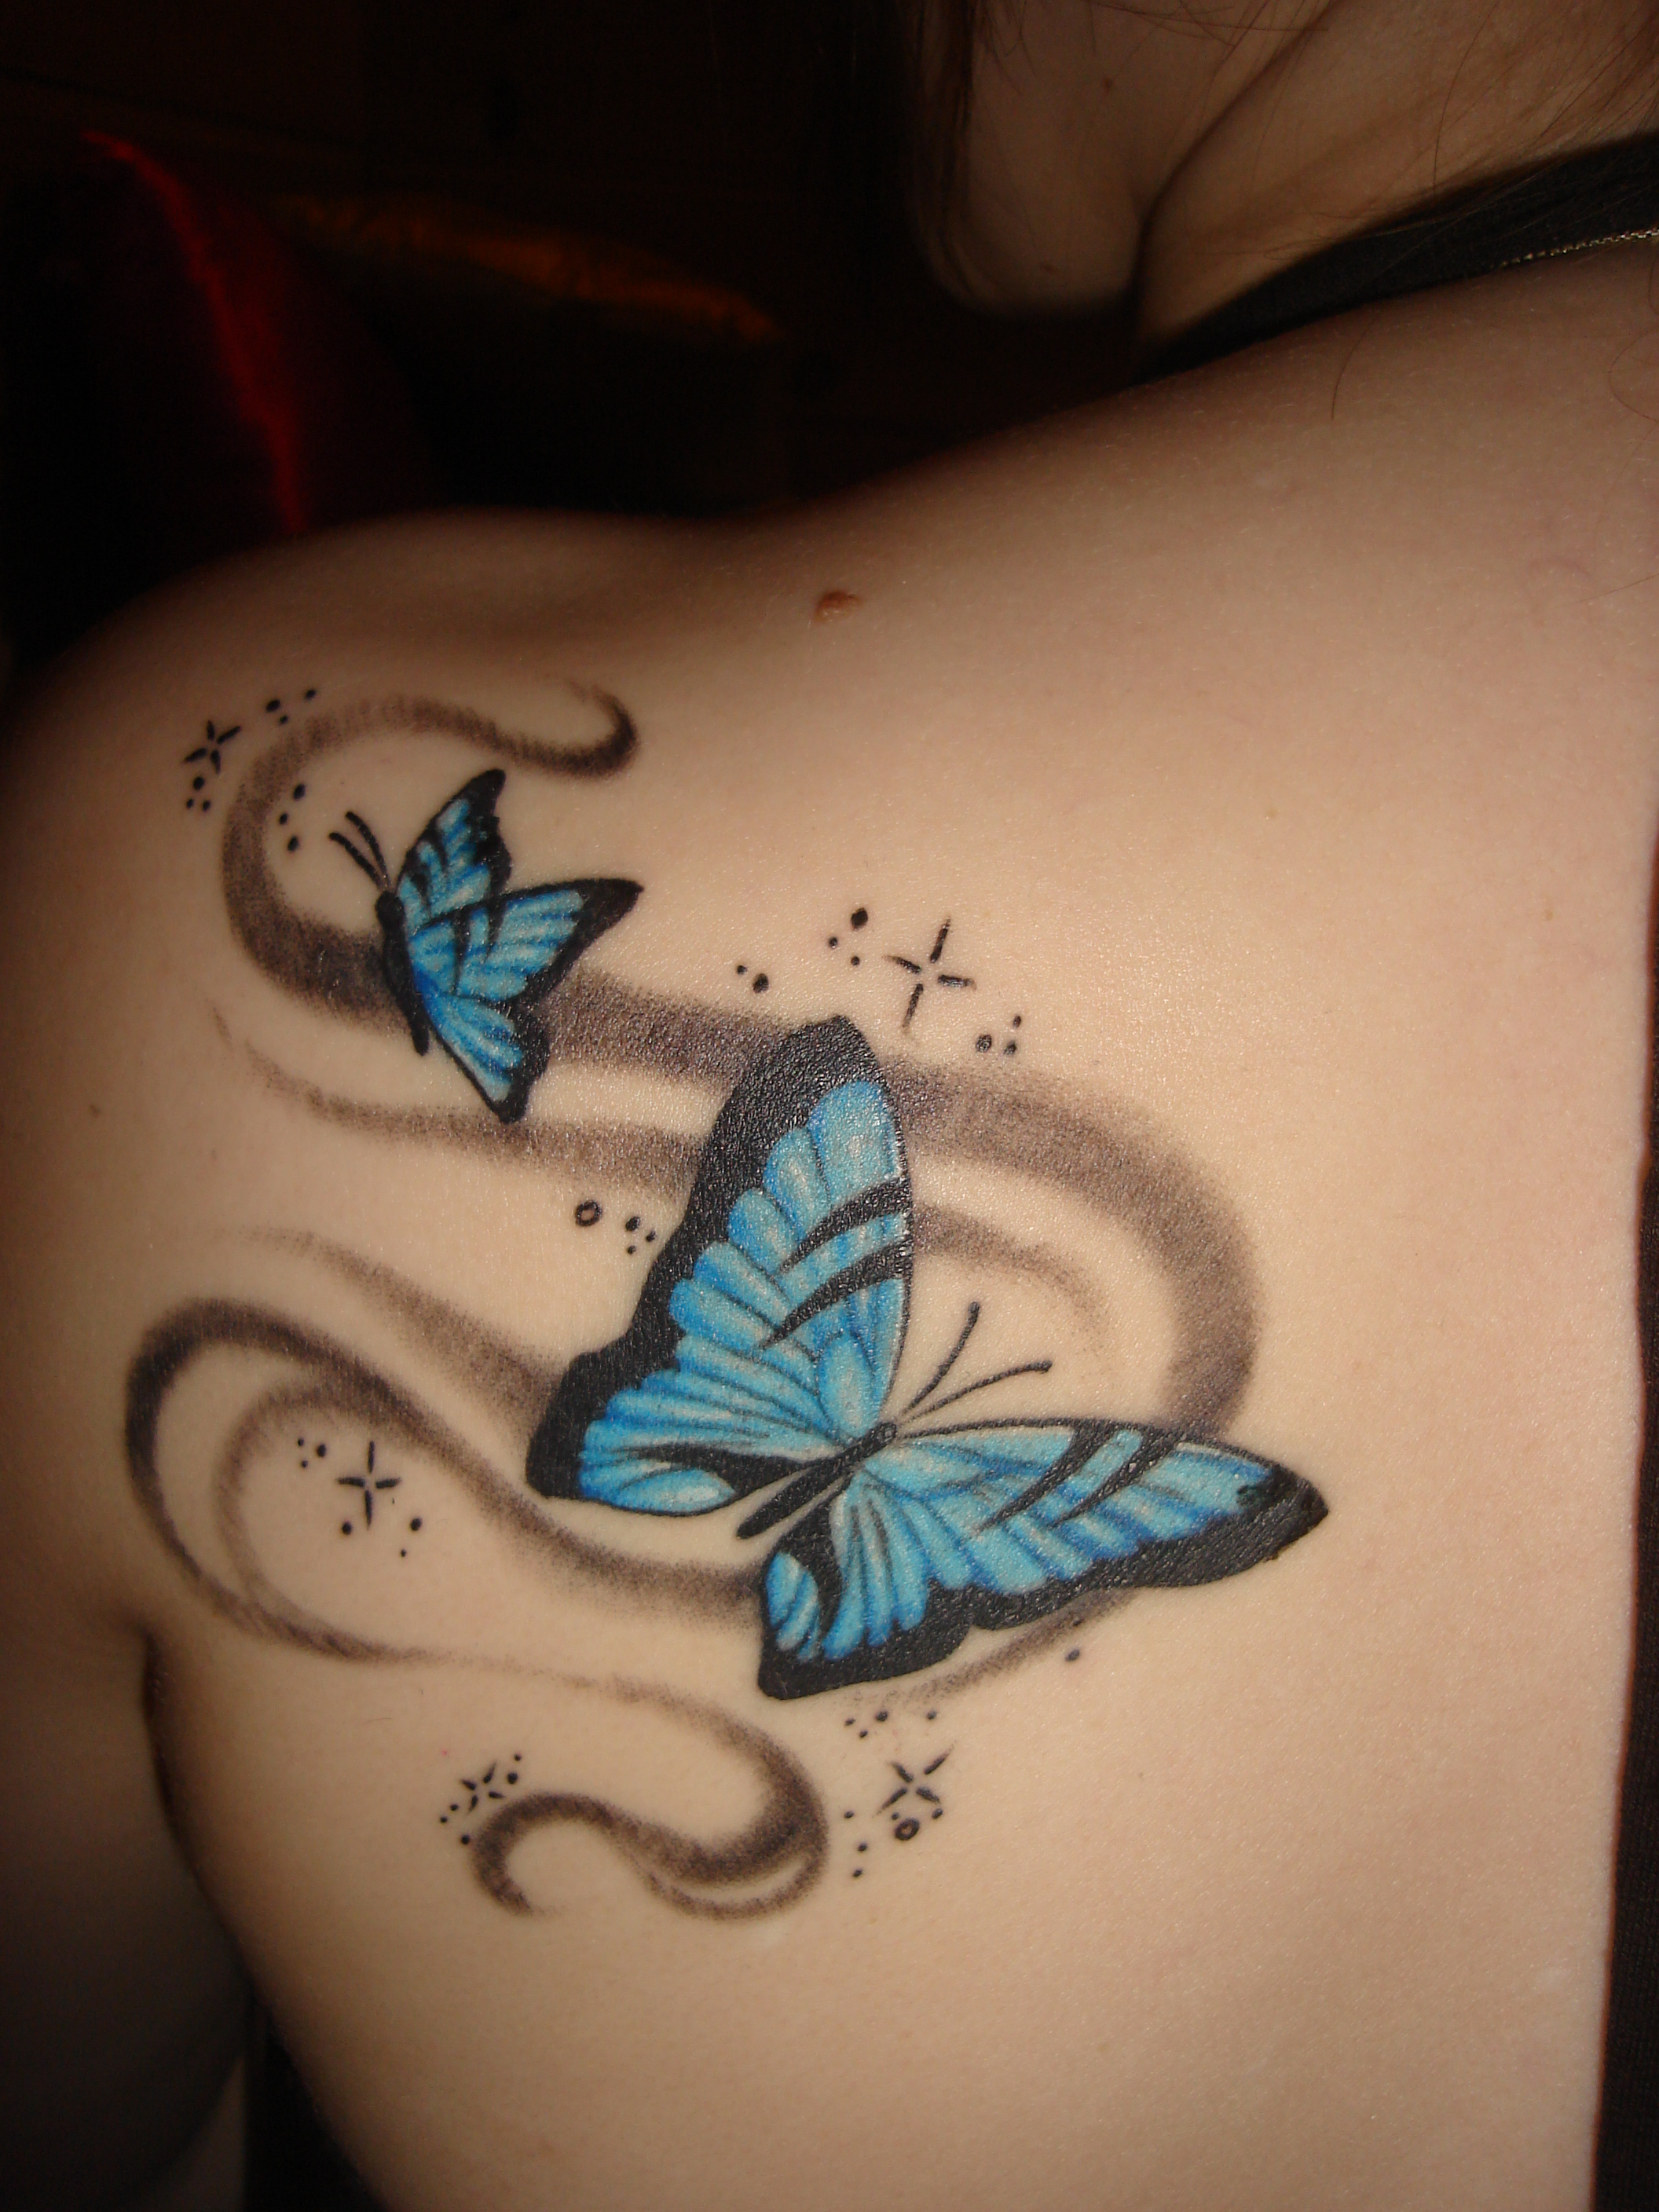 Tatouage Image Galerie De Photos Tattoos Wwwtattoo